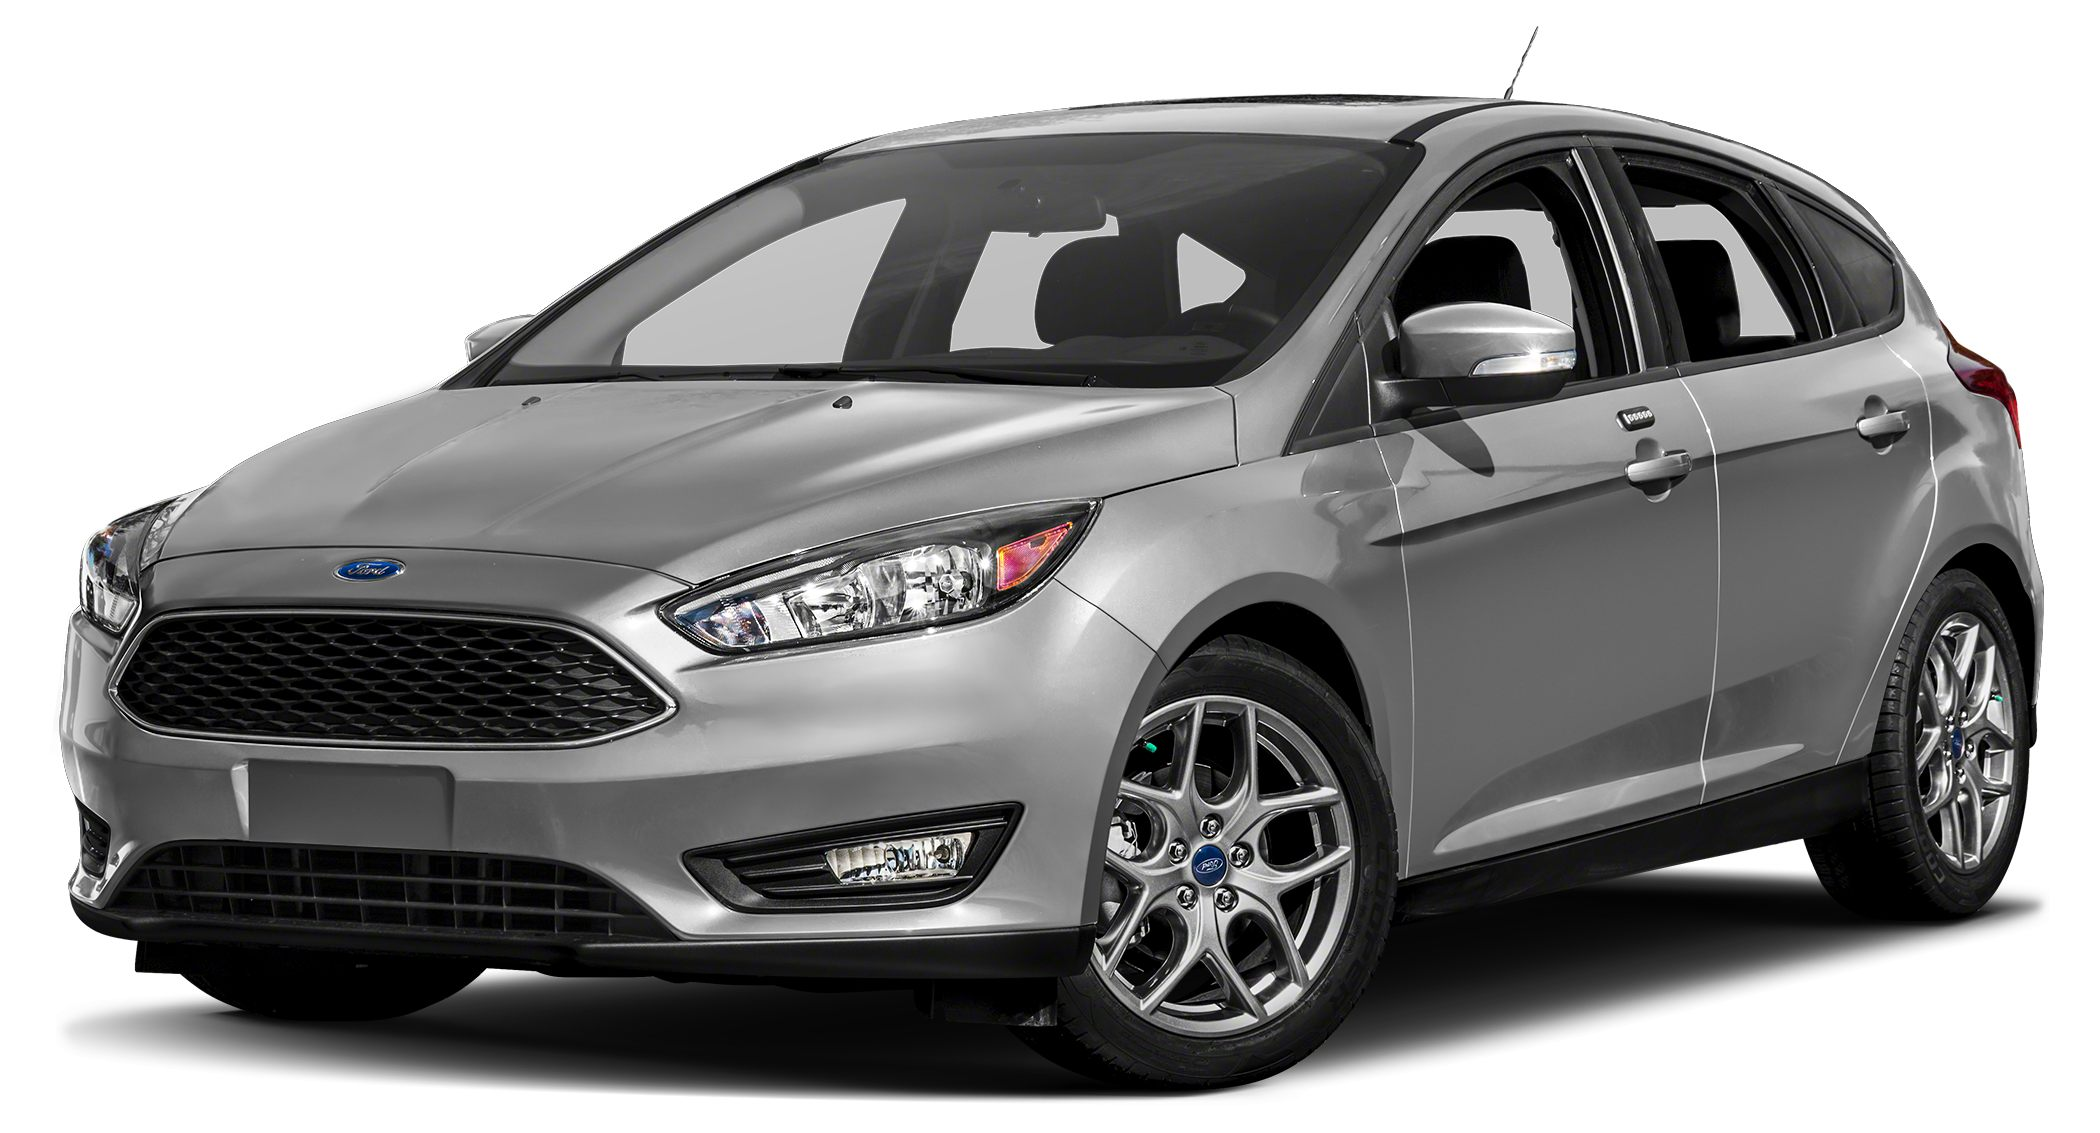 2015 Ford Focus Titanium It only takes a glance to see the all-new 2015 Ford Focus dynamic new lo